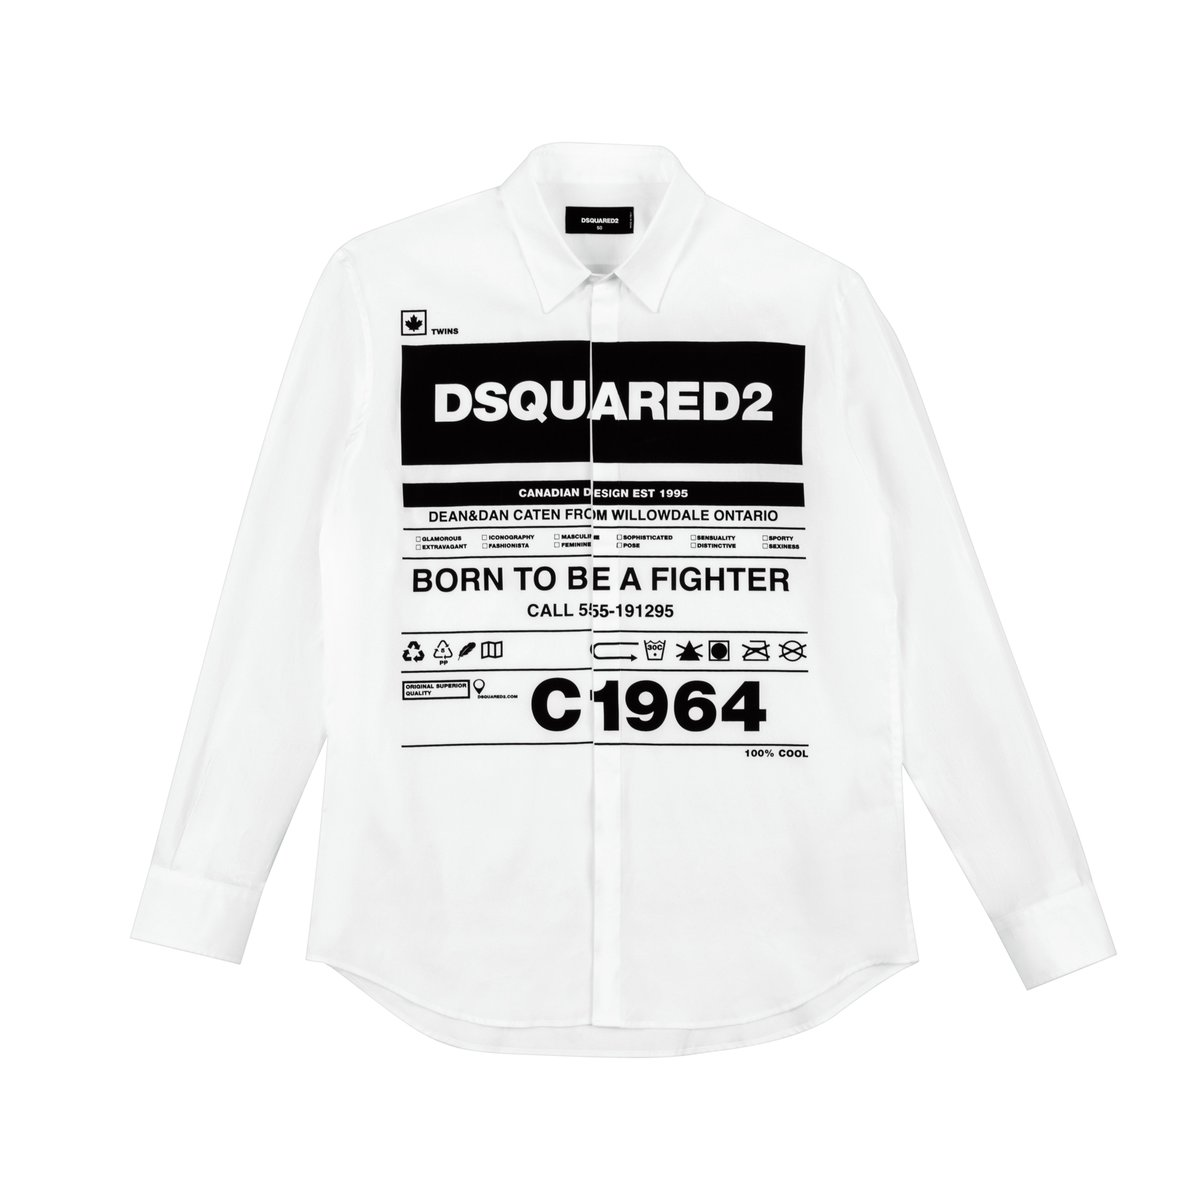 Born to be a fighter #DSQUARED2 #SaksMéxico #menstylepic.twitter.com/uU2NP98QAN